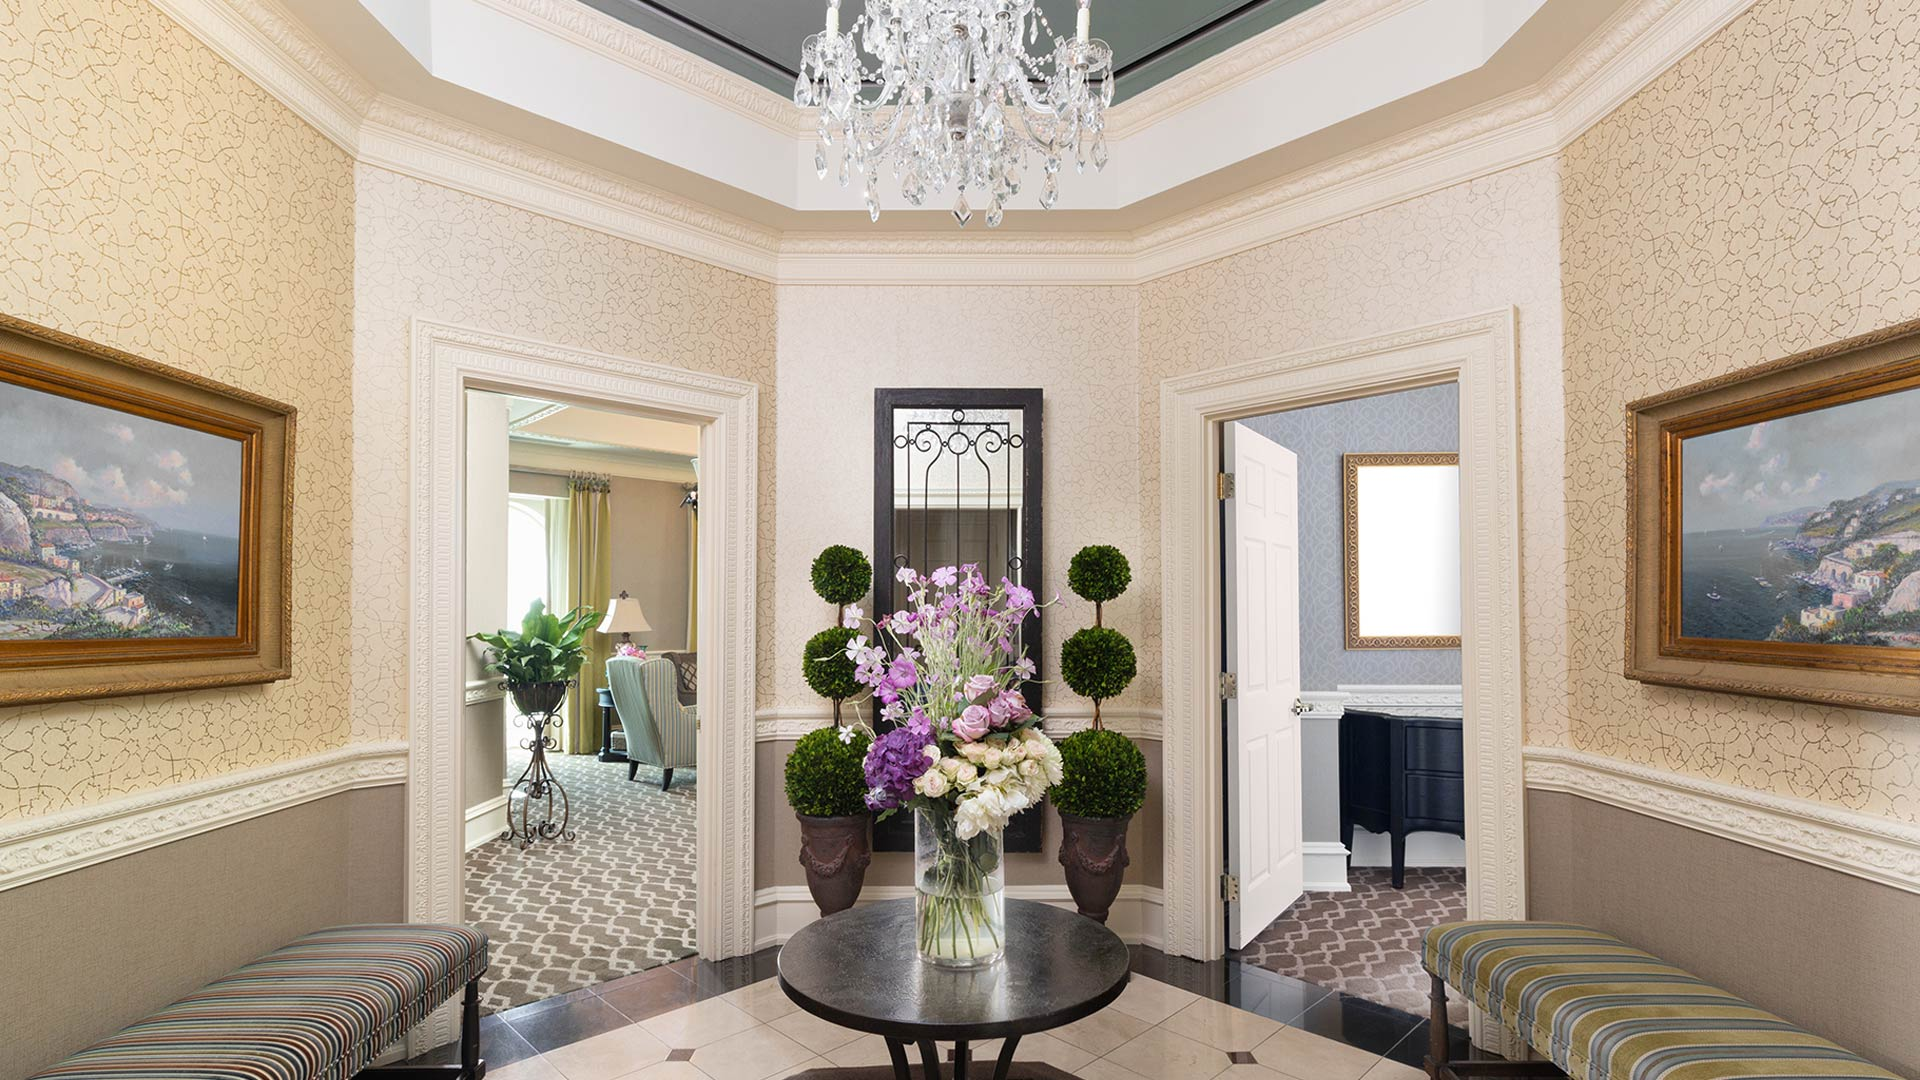 interior shot of The Chateau's presidential suite foyer. There is a round table in the center with flowers. on either side is a door leading to another room.